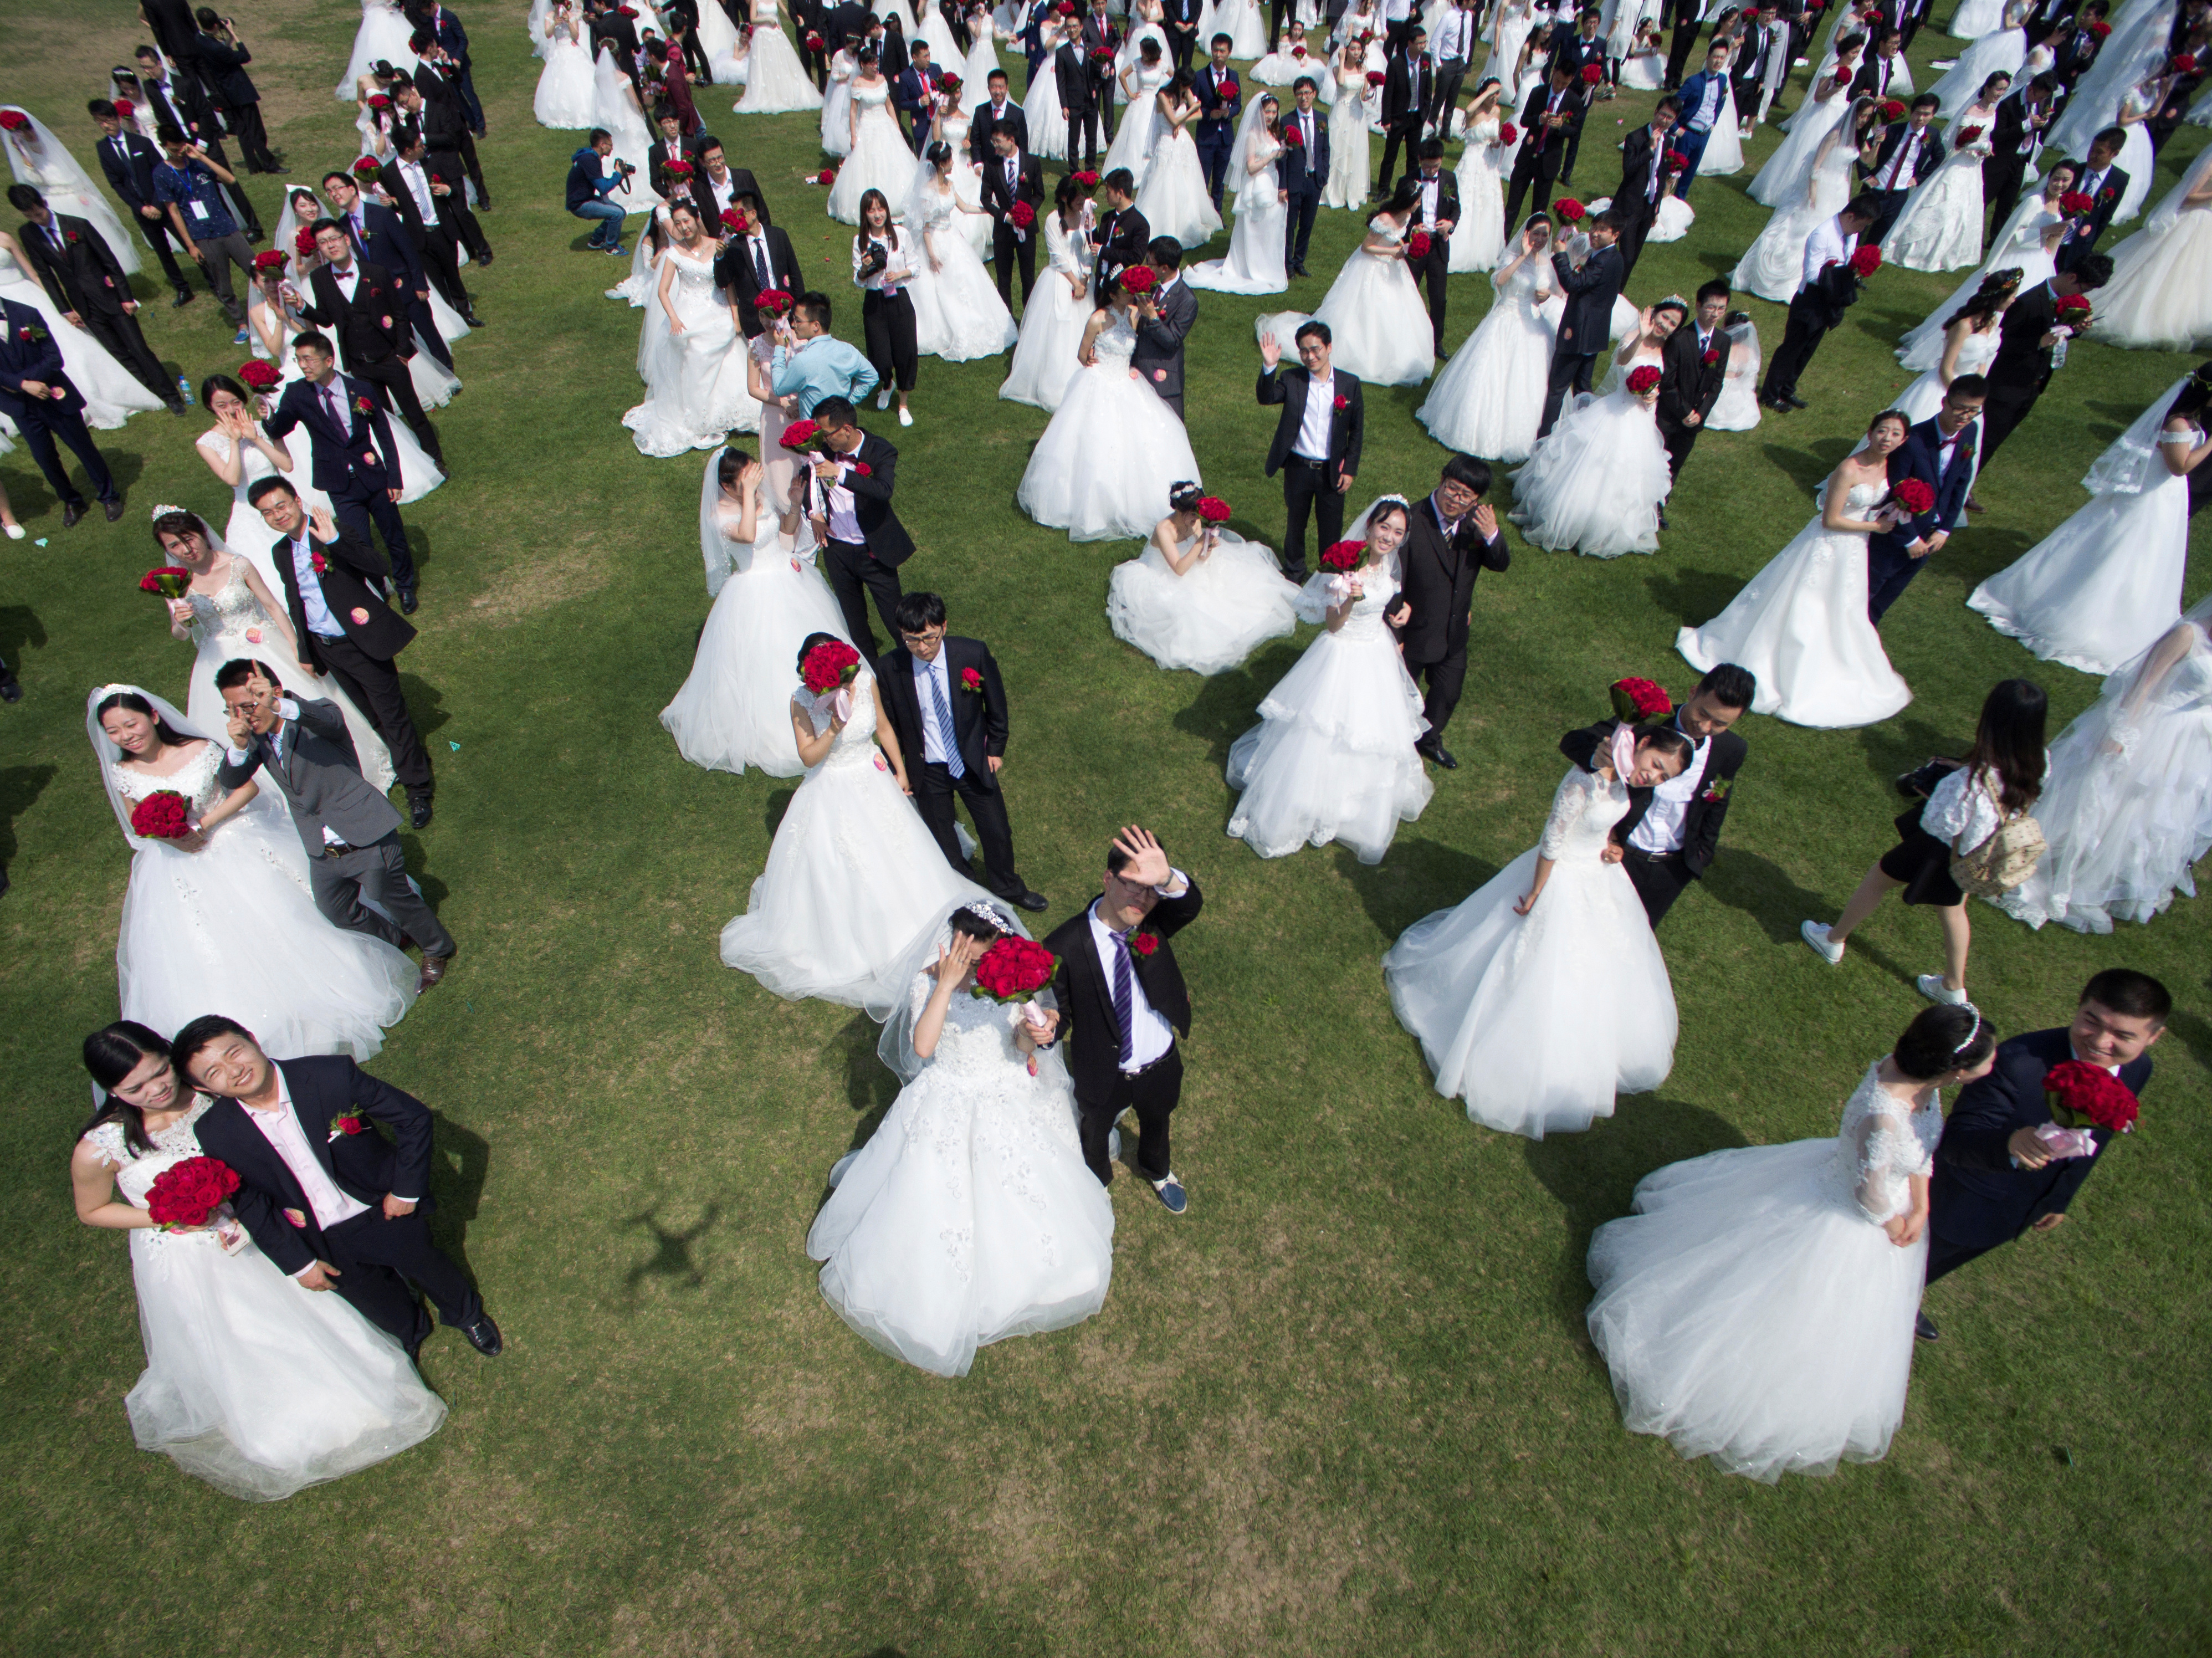 Newlywed couples attend a mass wedding ceremony in Hangzhou, Zhejiang province, China, on April 30, 2016